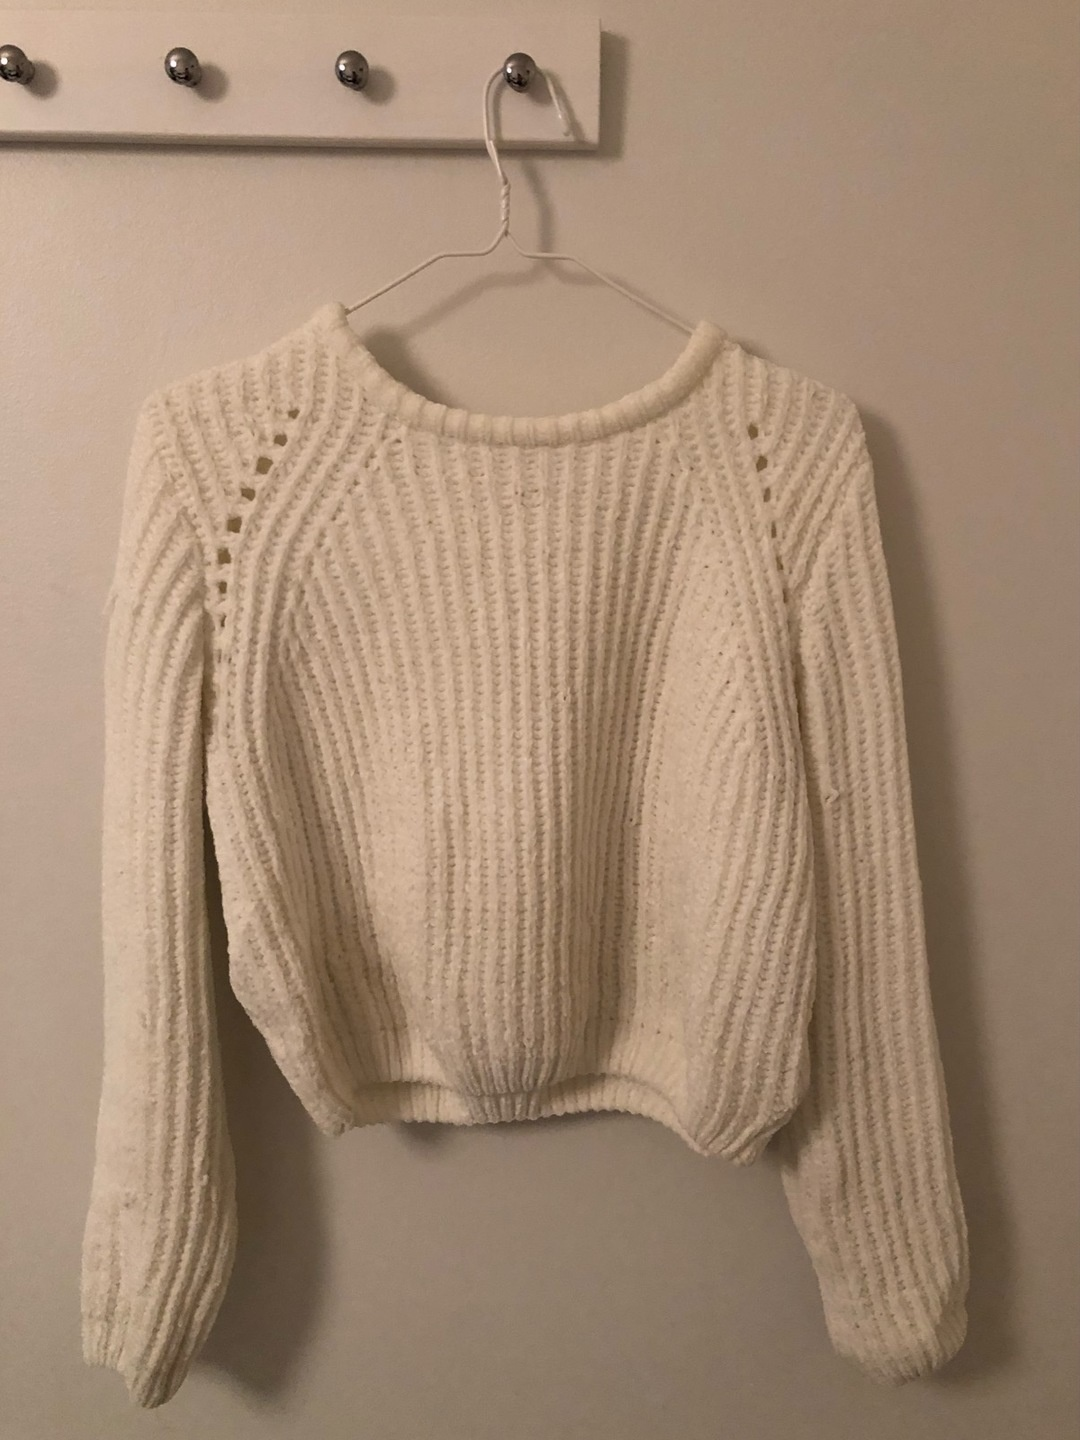 Women's jumpers & cardigans - CROPP photo 1